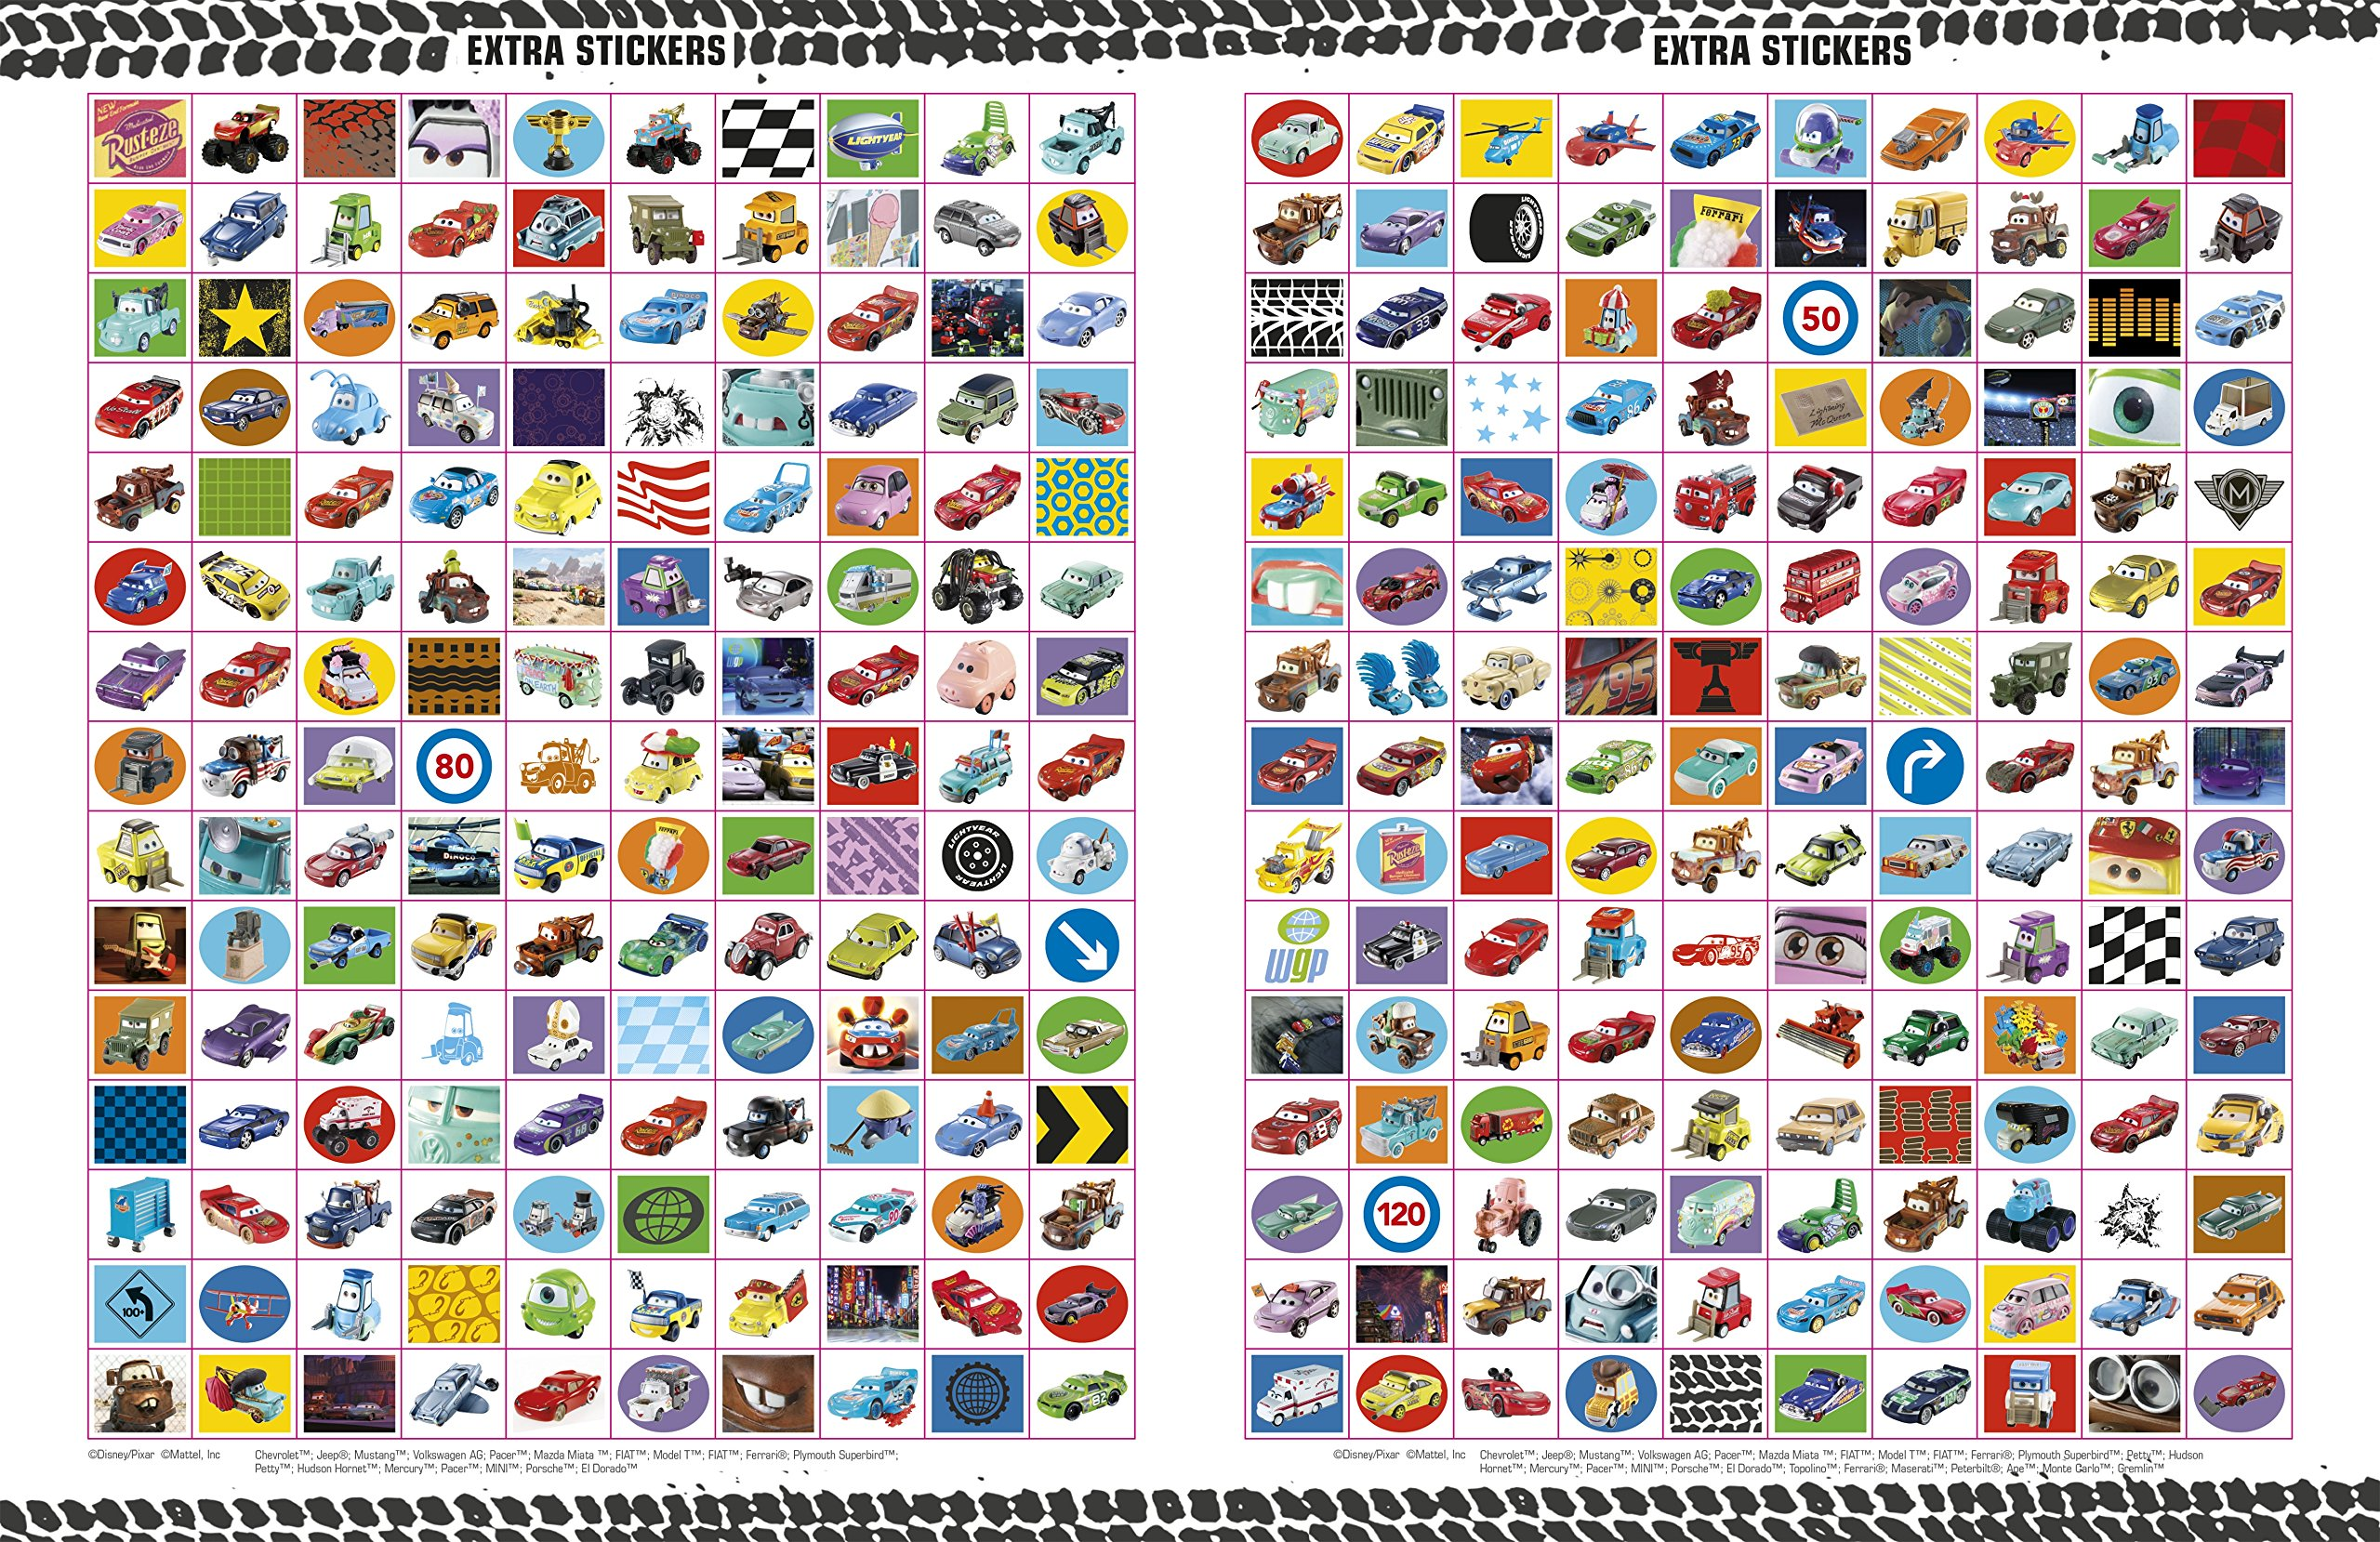 Ultimate Sticker Collection: Disney Pixar Cars (Ultimate Sticker Collections) by DK Publishing Dorling Kindersley (Image #7)